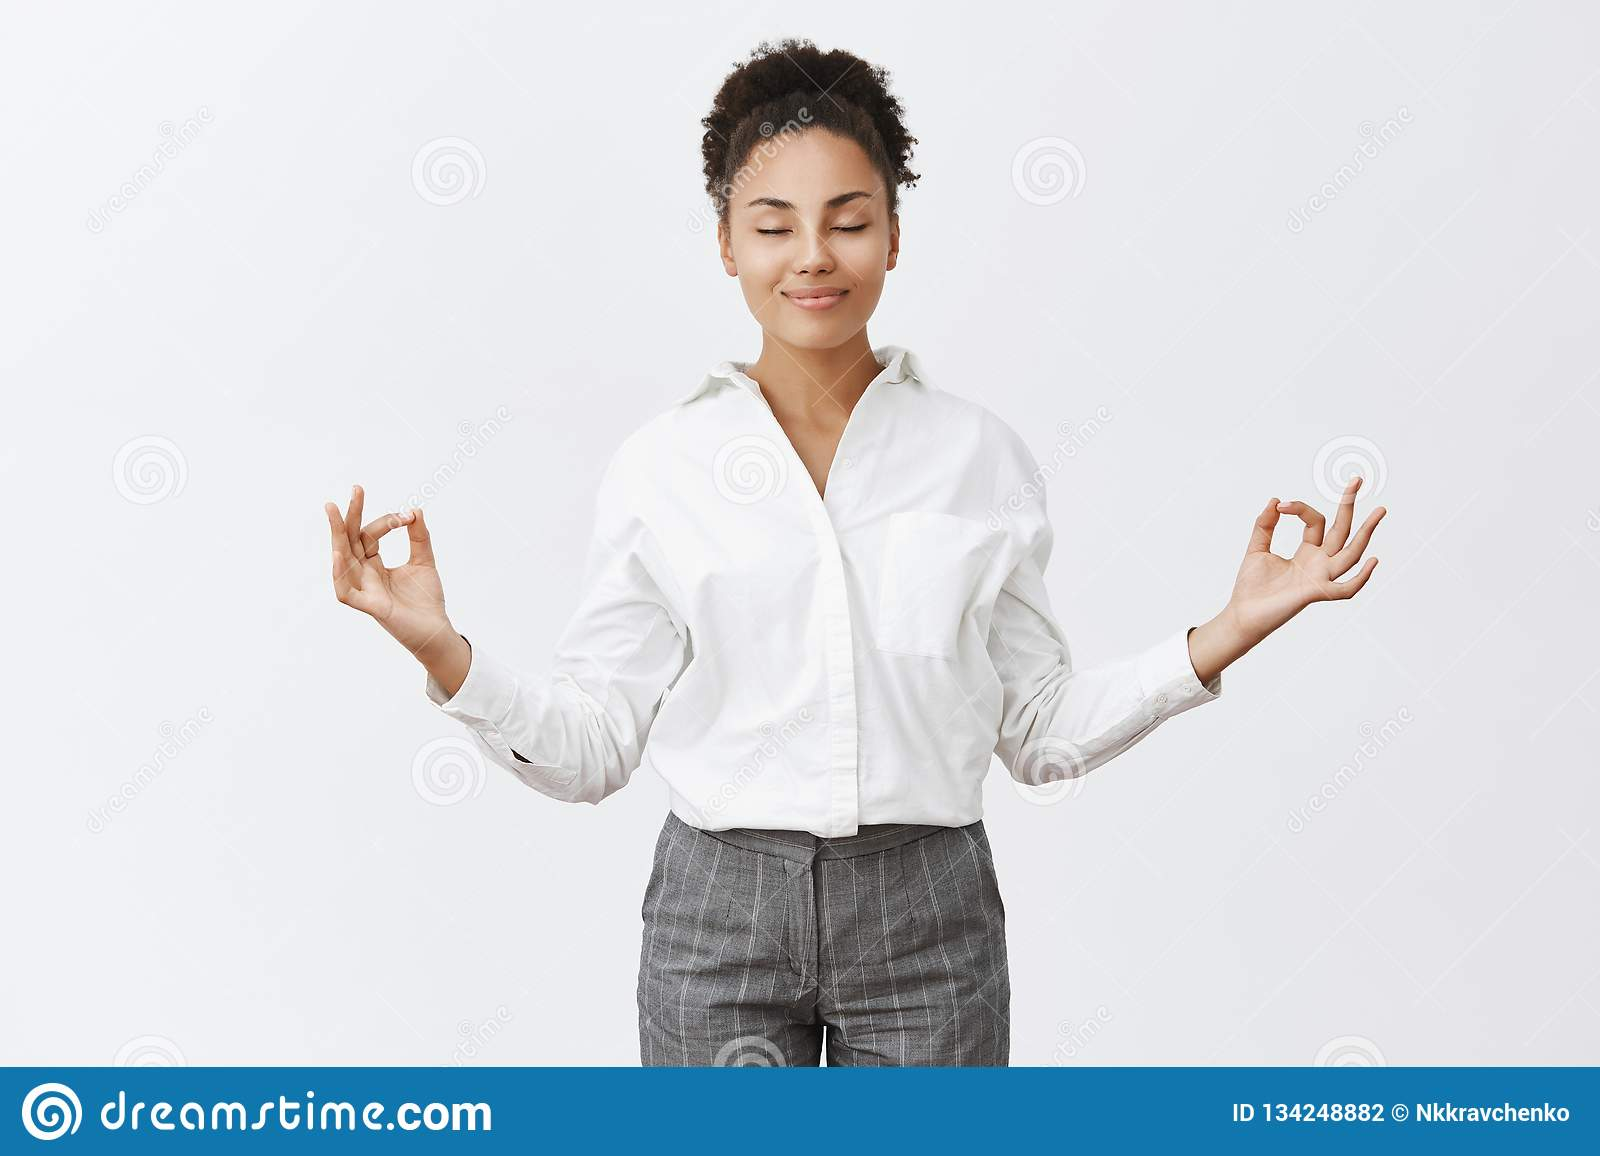 Stress free, only peace inside. Charming relaxed and carefree female in bossy outfit, raising hands in zen gesture